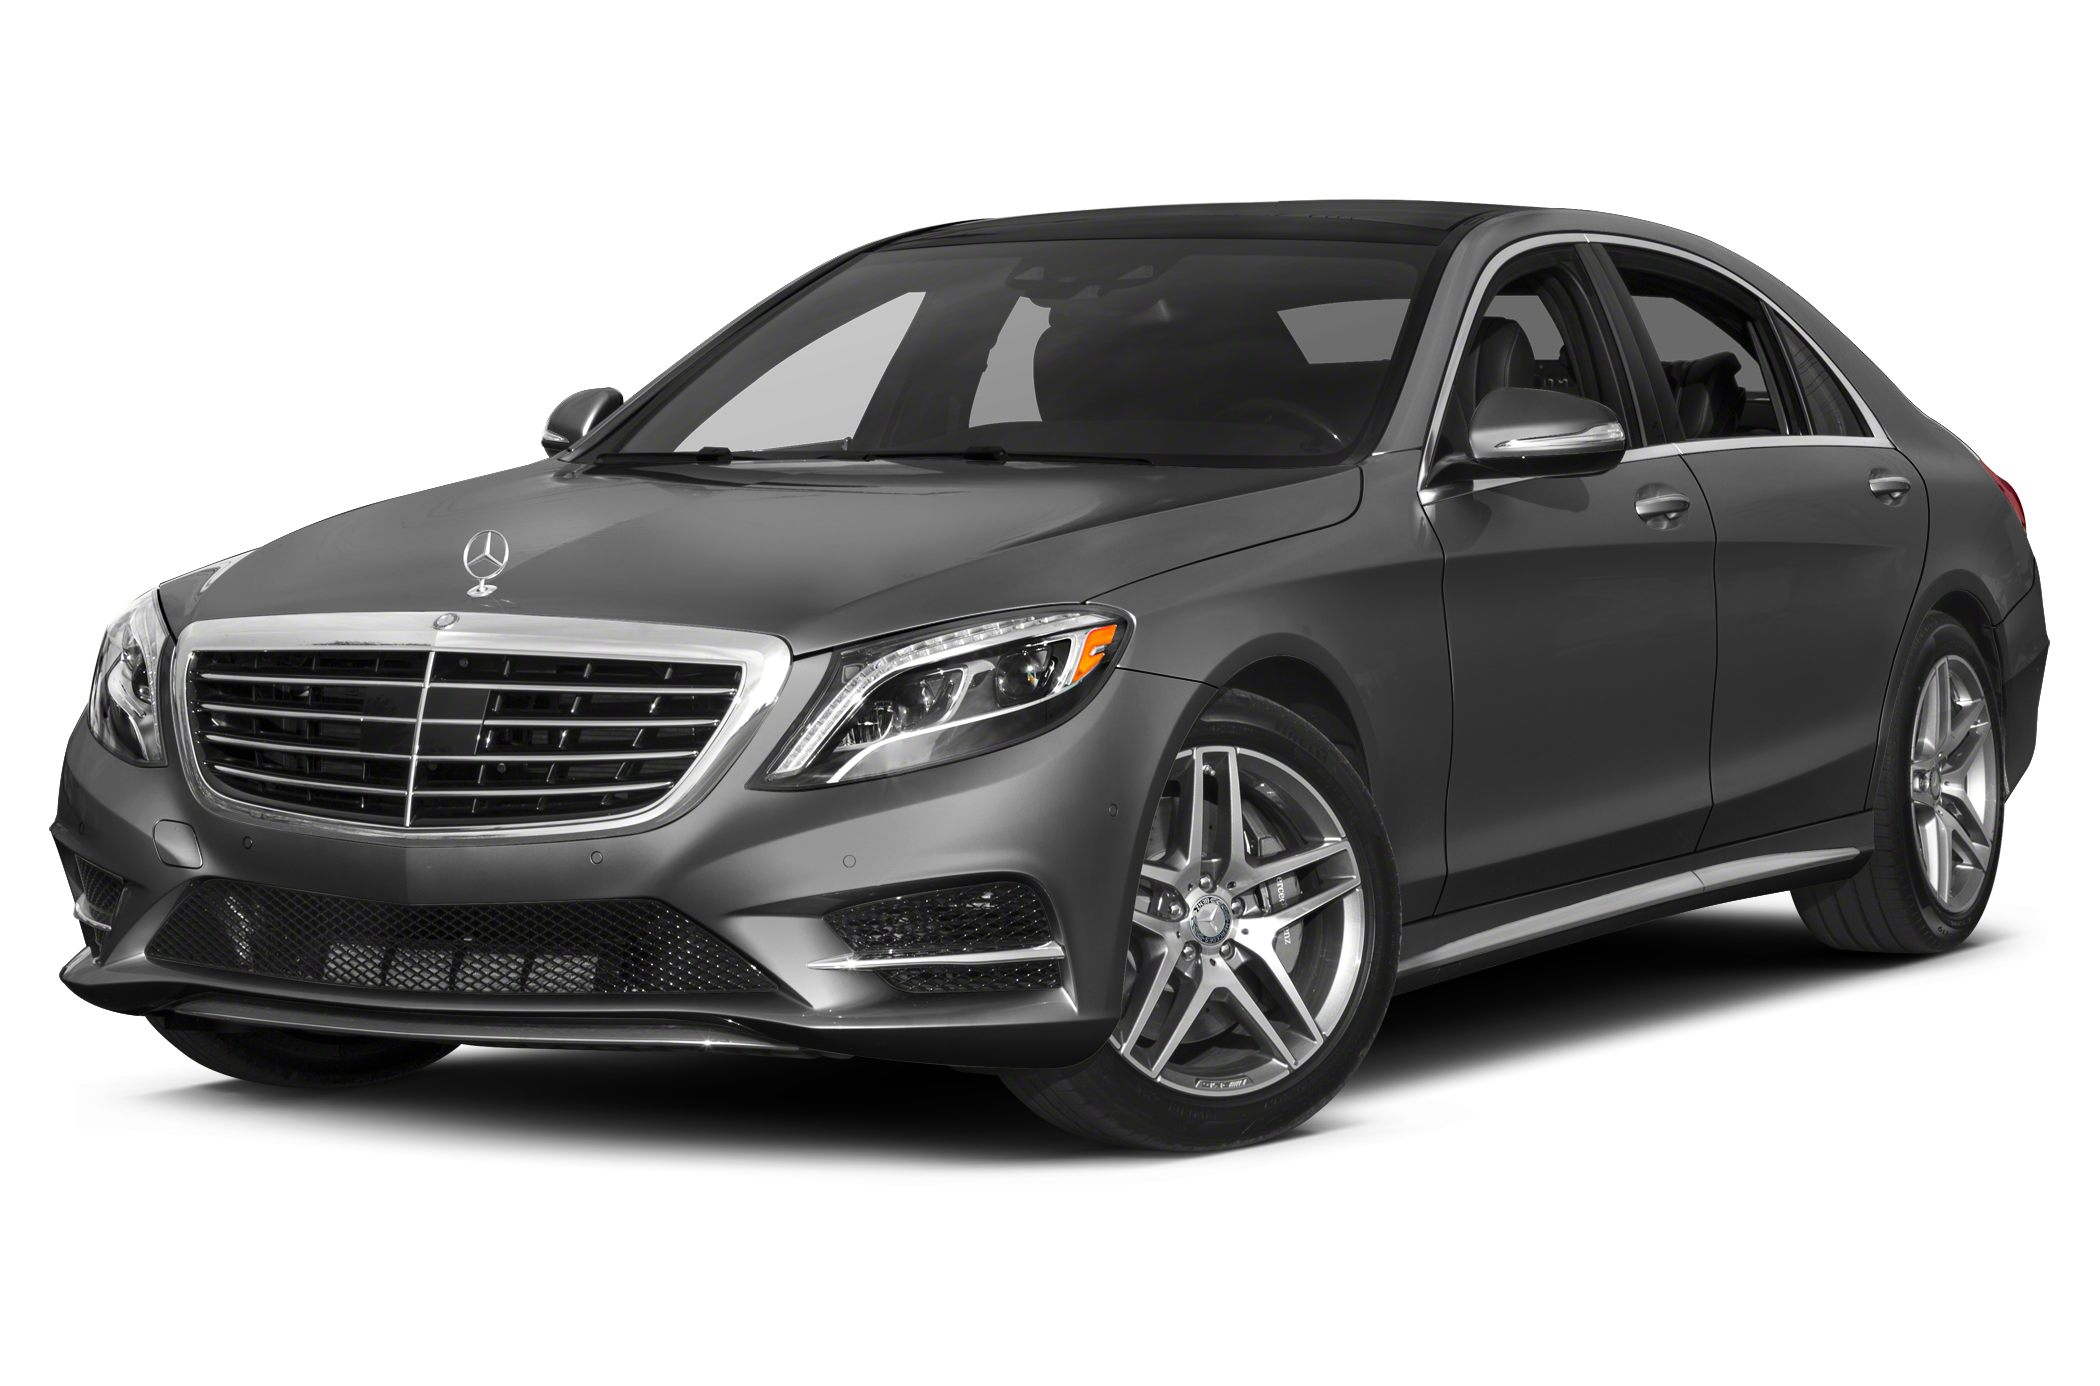 2014 Mercedes-Benz S-Class S550 Sedan for sale in Miami for $93,991 with 2,656 miles